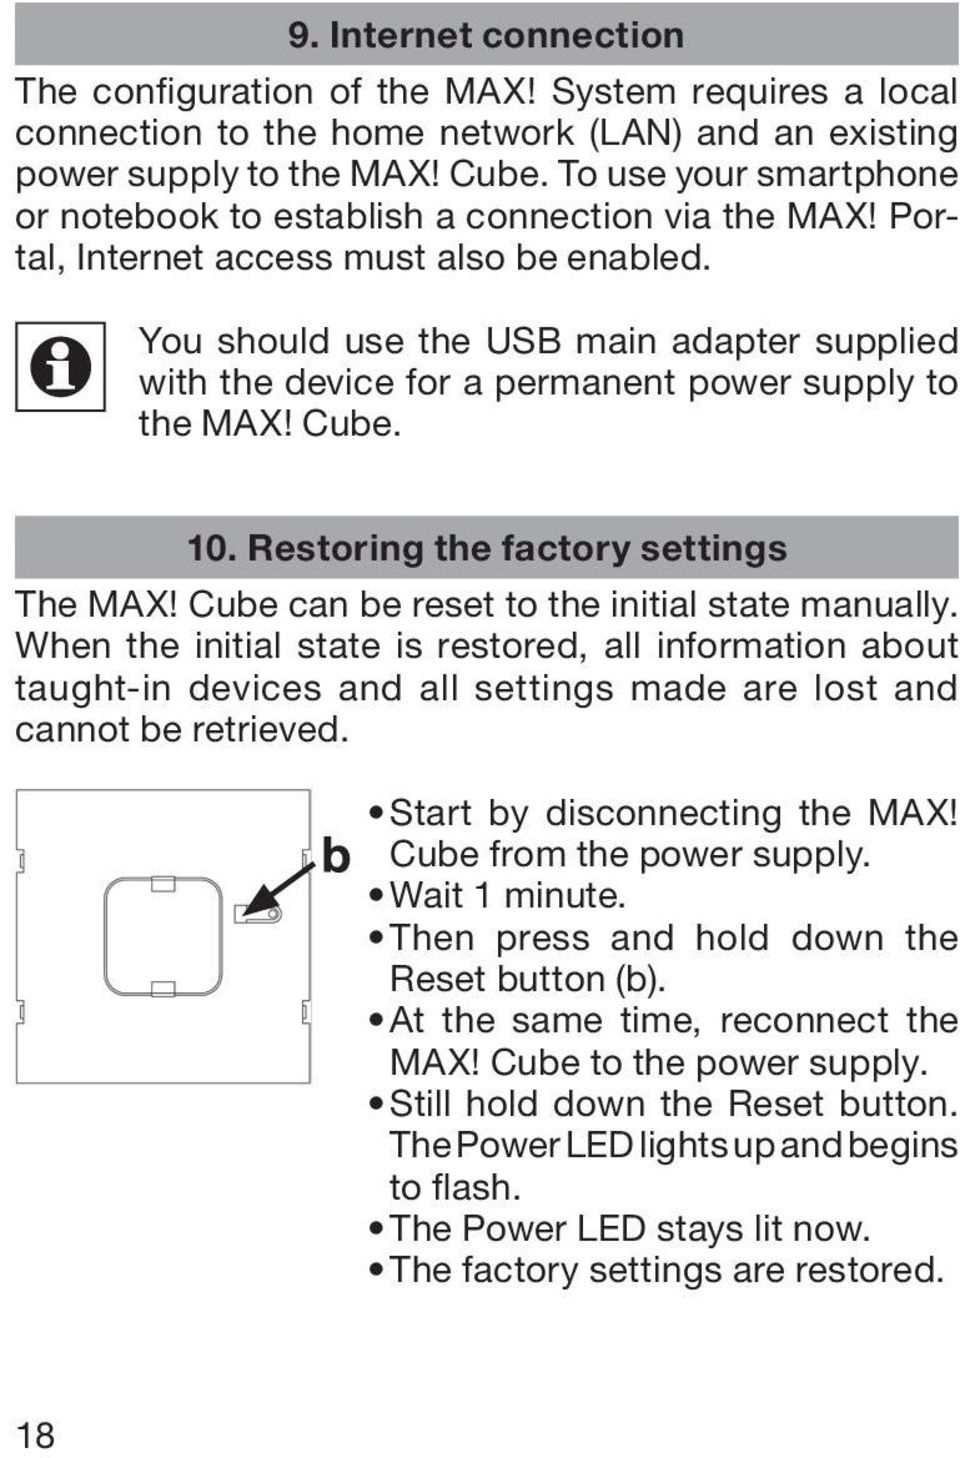 You should use the USB main adapter supplied with the device for a permanent power supply to the MAX! Cube. 10. Restoring the factory settings The MAX! Cube can be reset to the initial state manually.